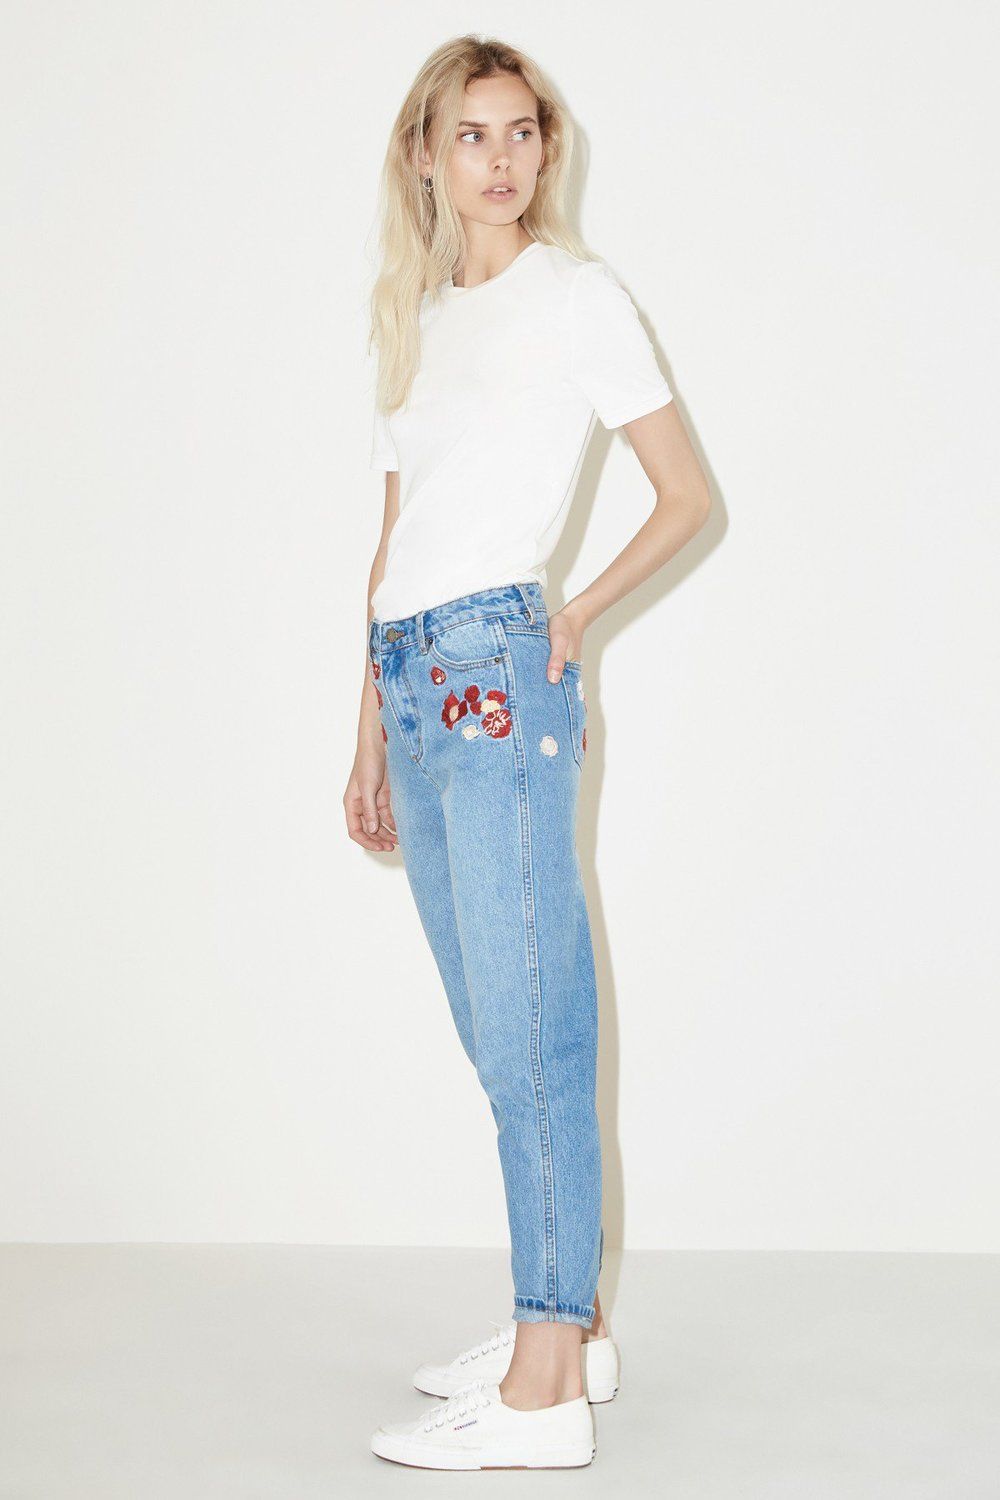 Shop The Fifth Bianca Embroidered Jean.